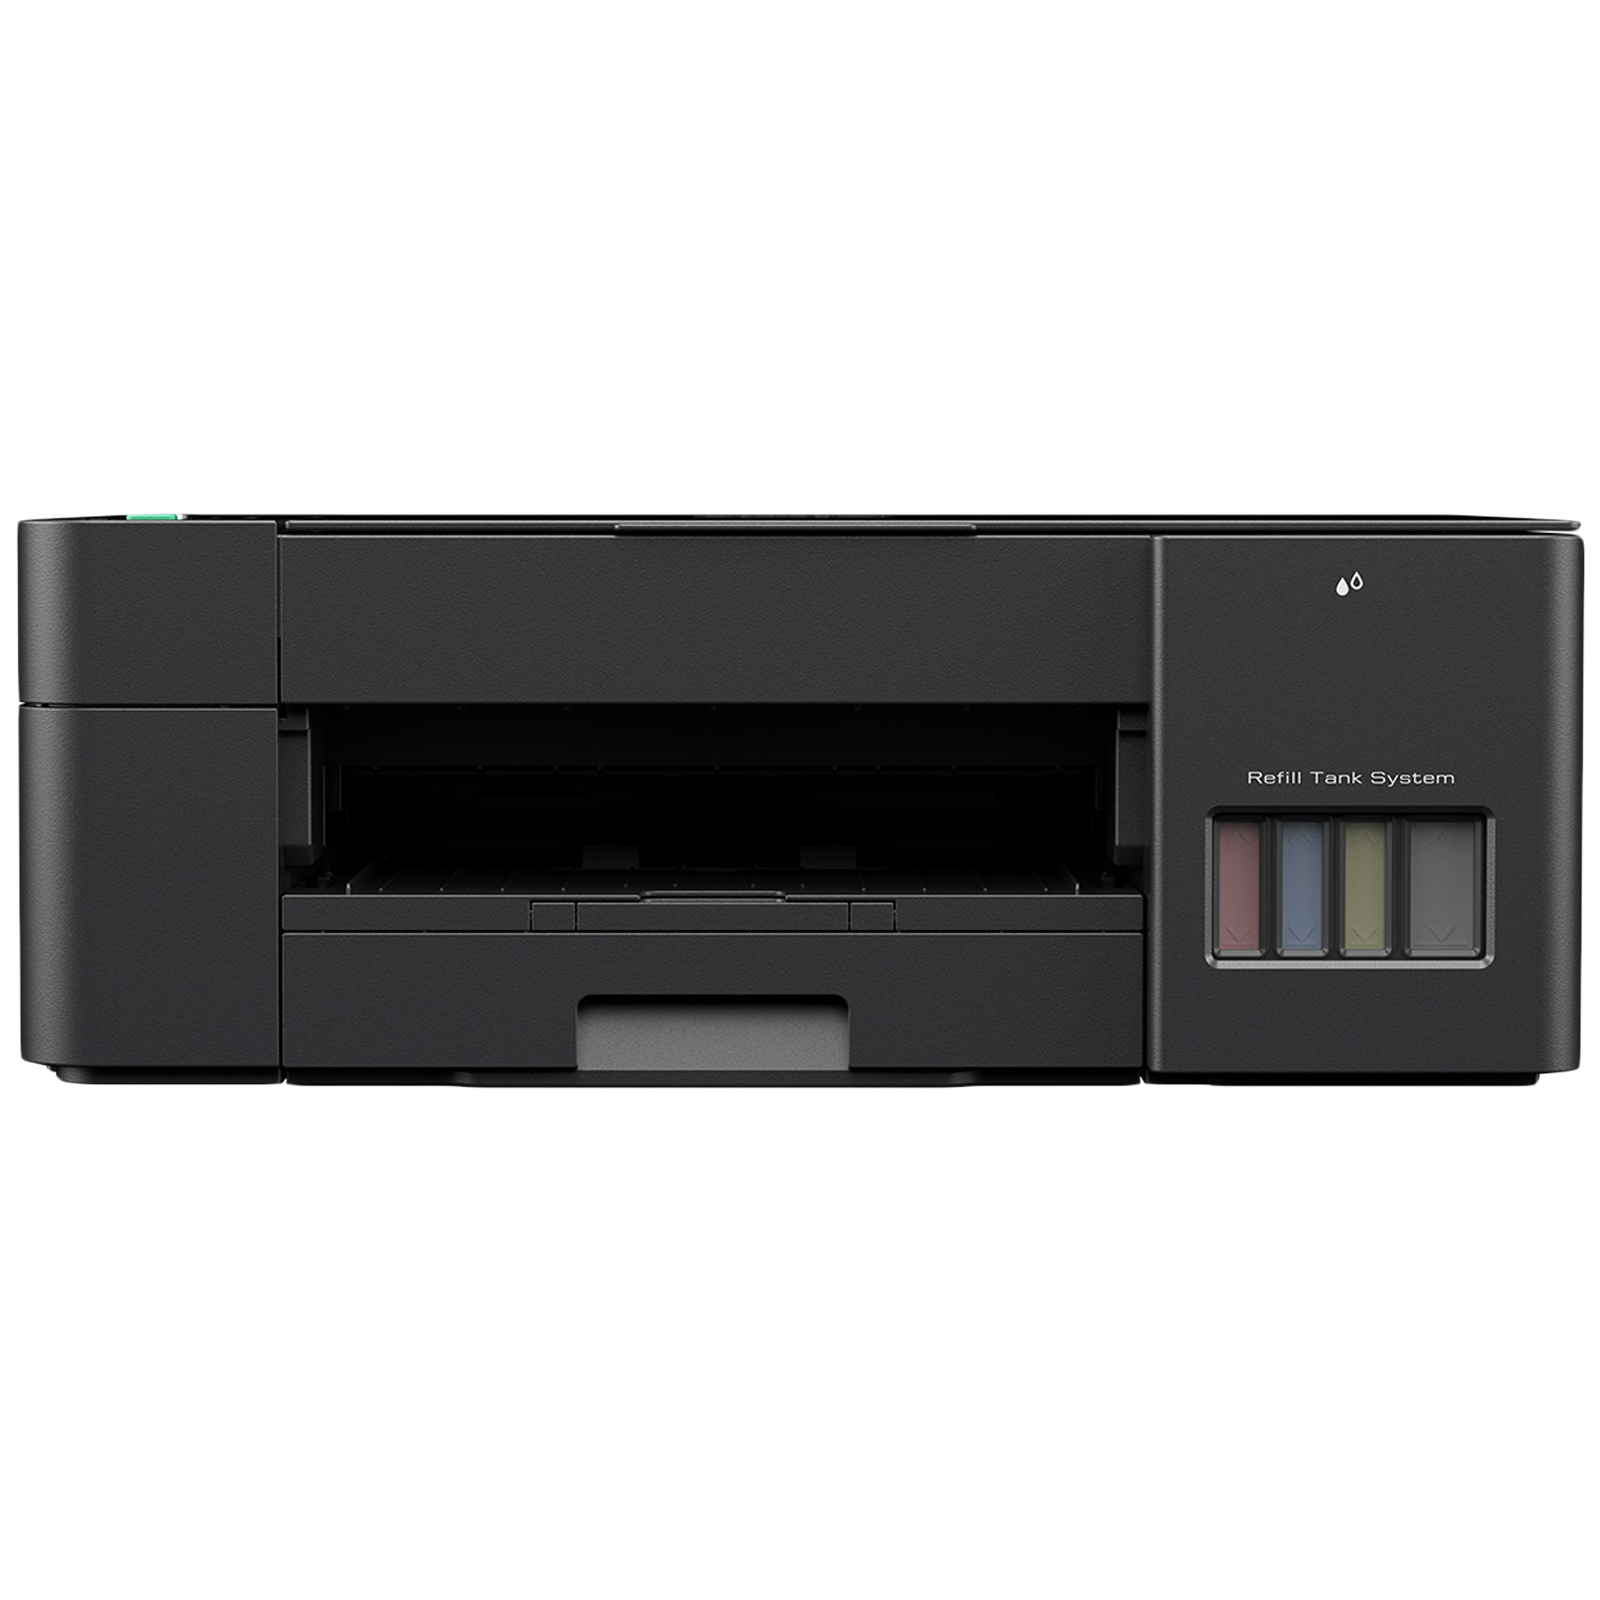 Brother Color Multi-Function Ink Tank Printer (Duplex Printing, DCP-T220, Black)_1